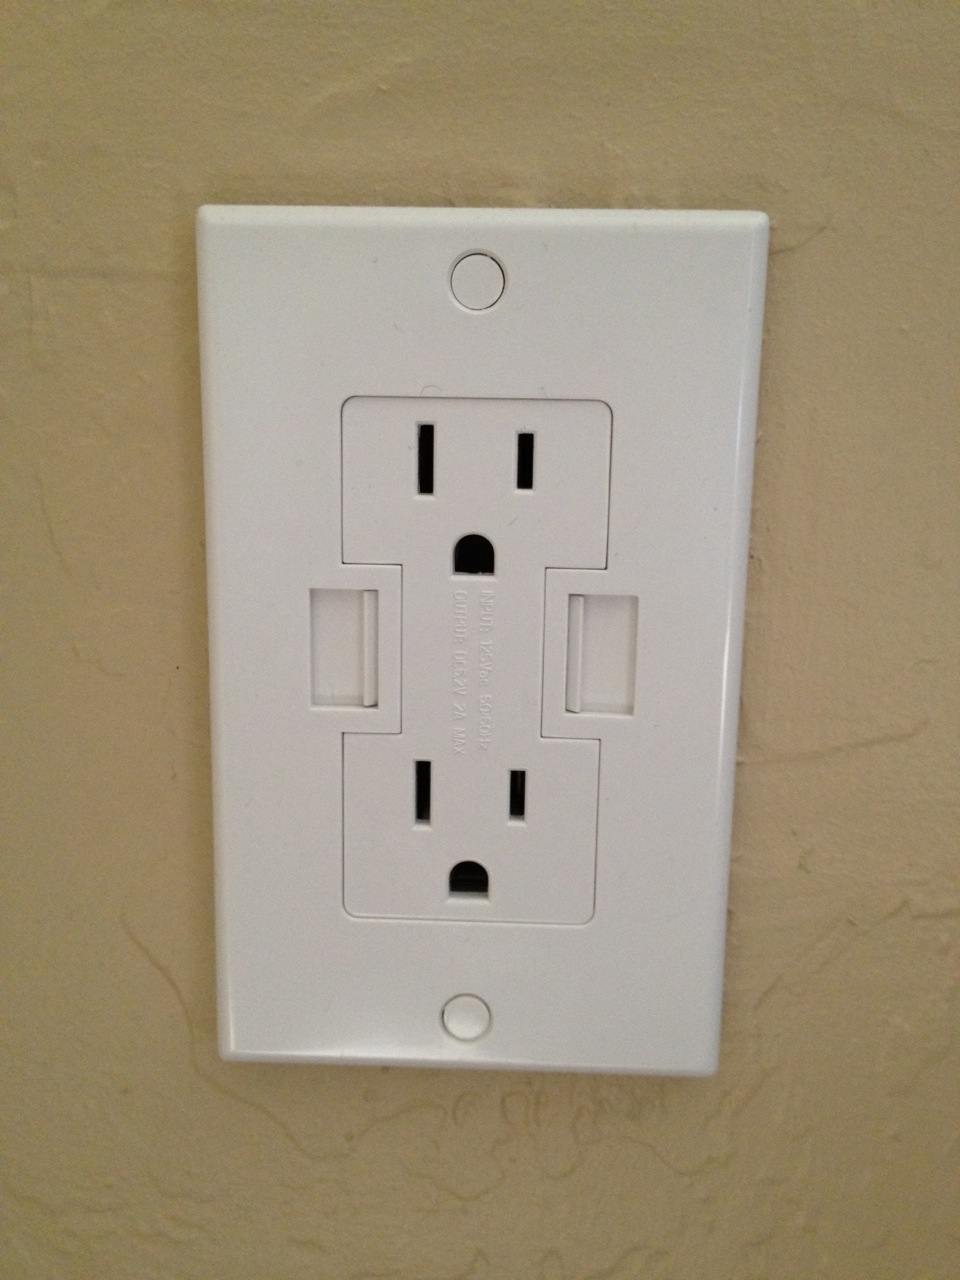 Make Your Home 21st Century Friendly With NewerTech's Power2U AC/USB Outlet